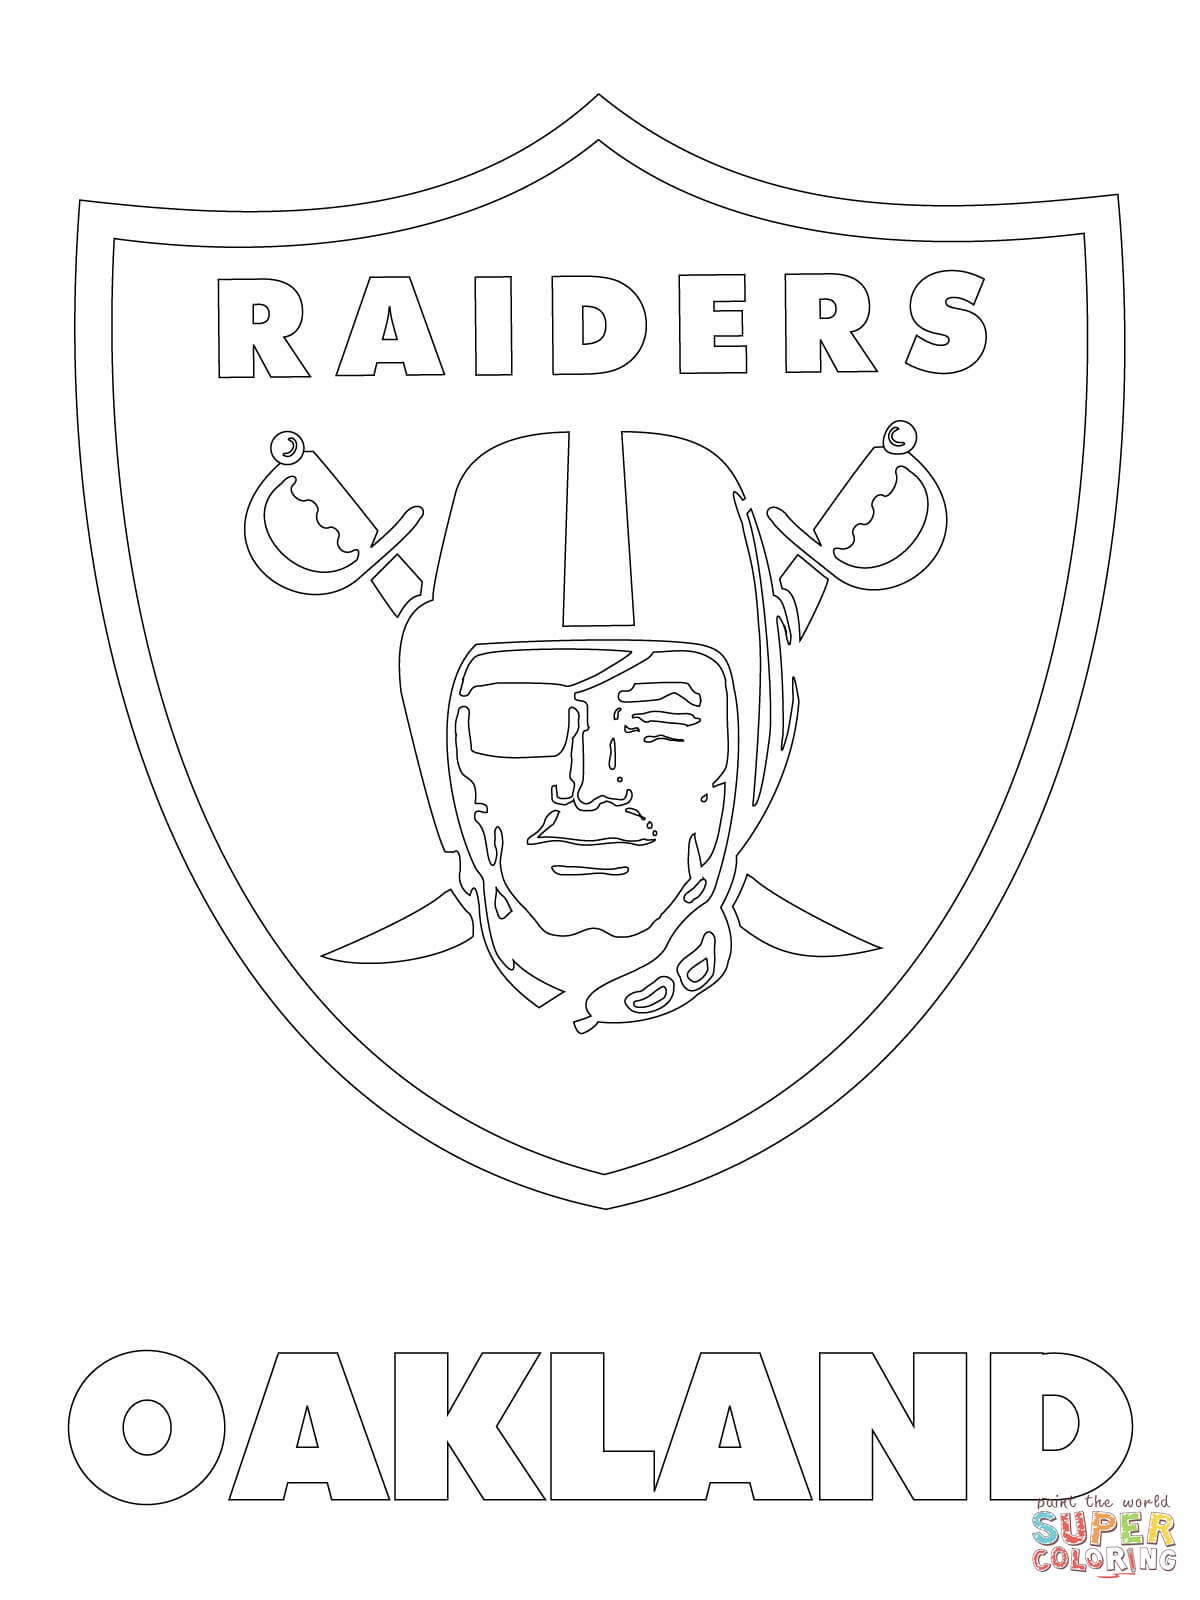 oakland raiders coloring pages oakland raiders logo coloring page free nfl coloring pages coloring oakland raiders